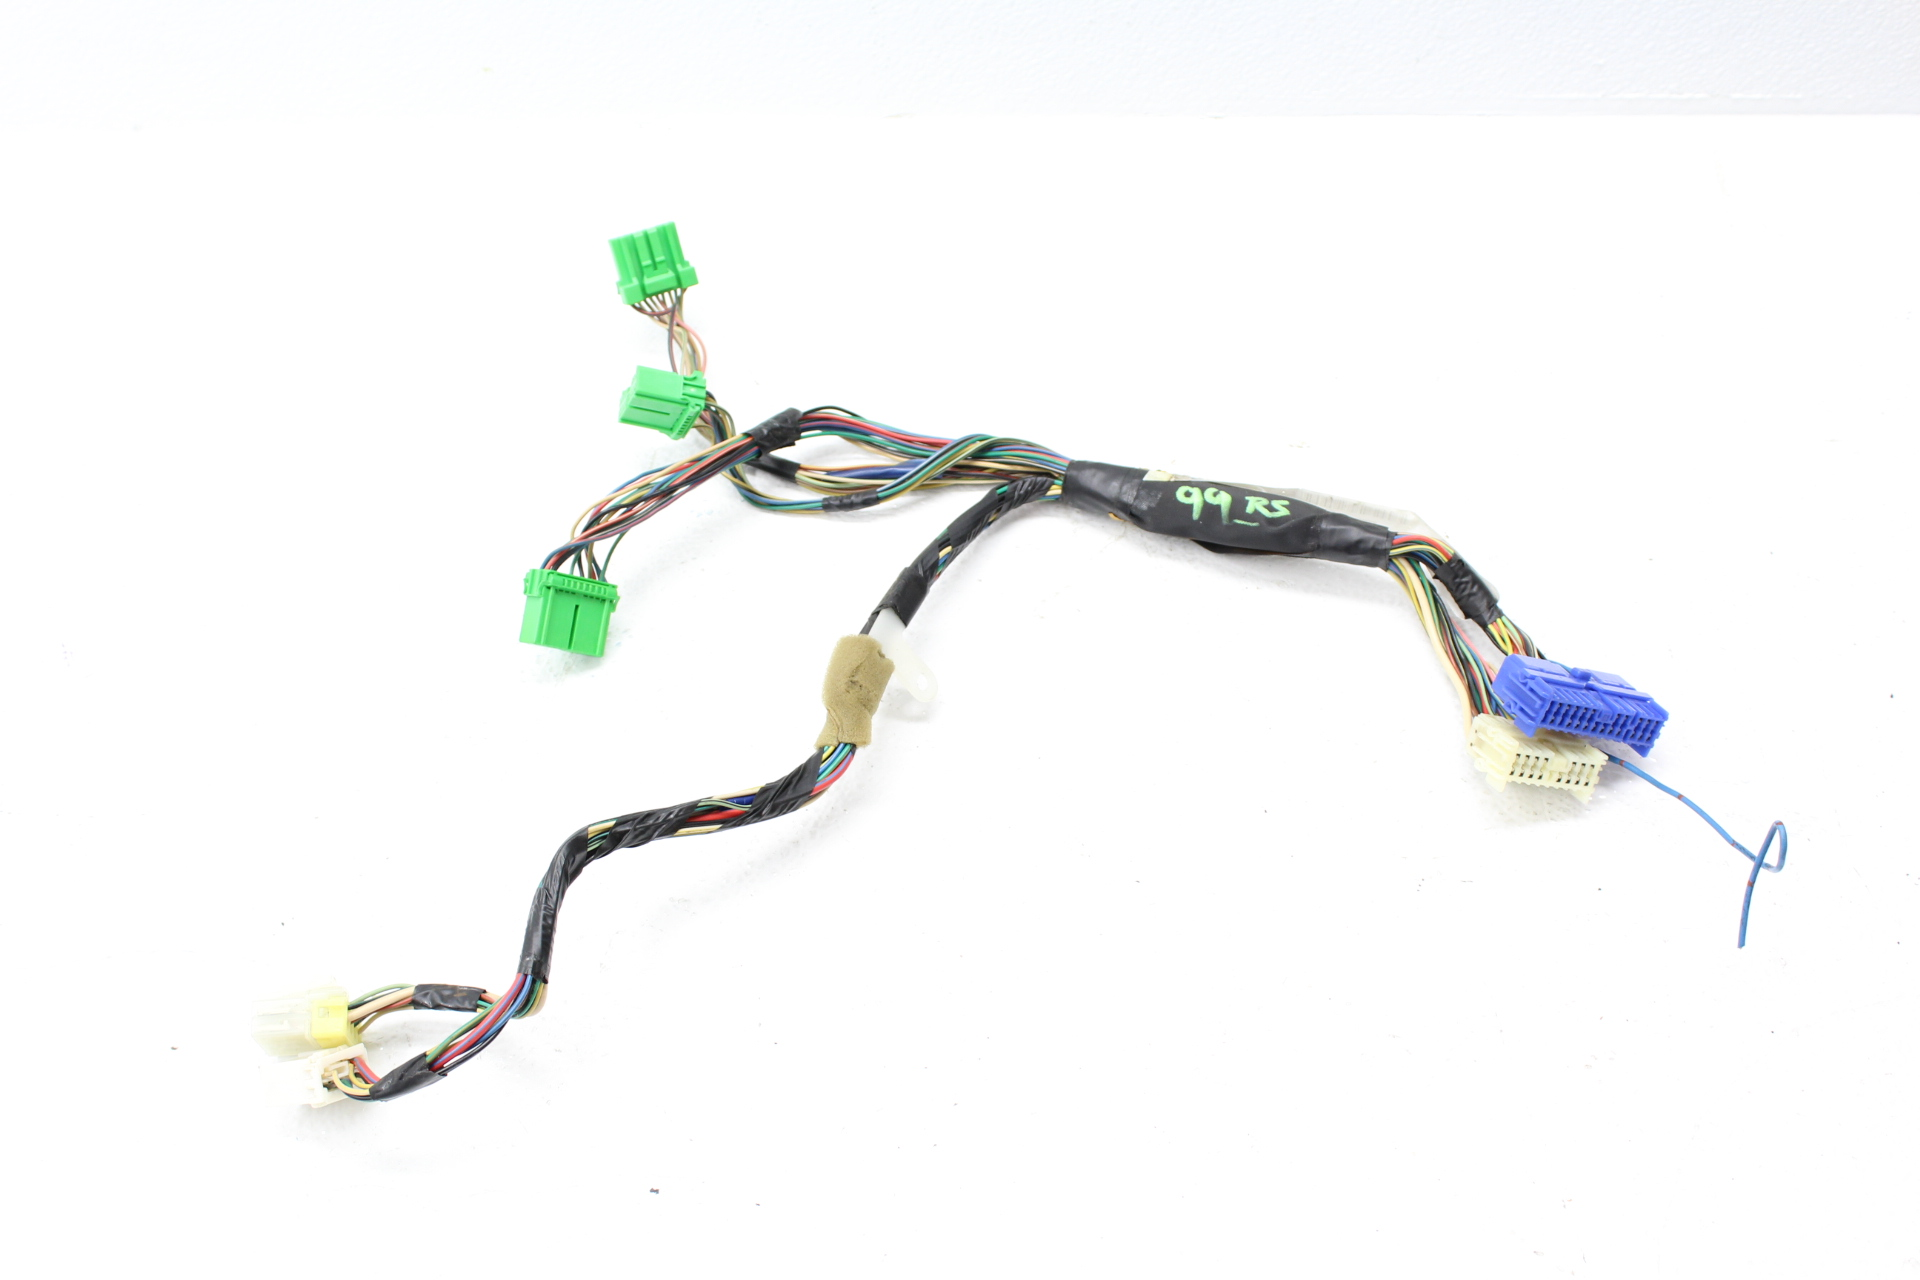 Subaru Trailer Wiring Harness Diagram Instrument Cluster 2008 Impreza Electrical 1998 2001 2 5 Rs Gc8 Gauge